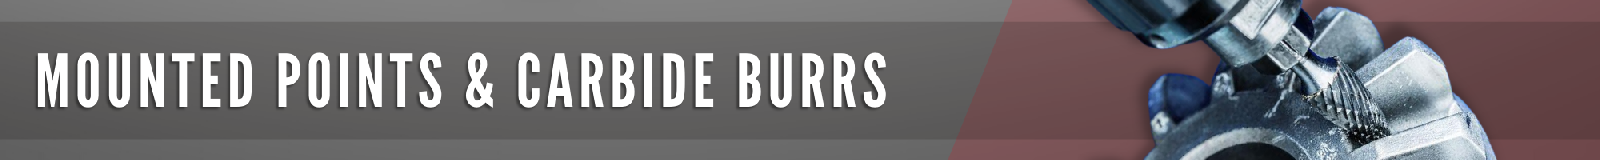 mounted-points-carbide-burrs.png